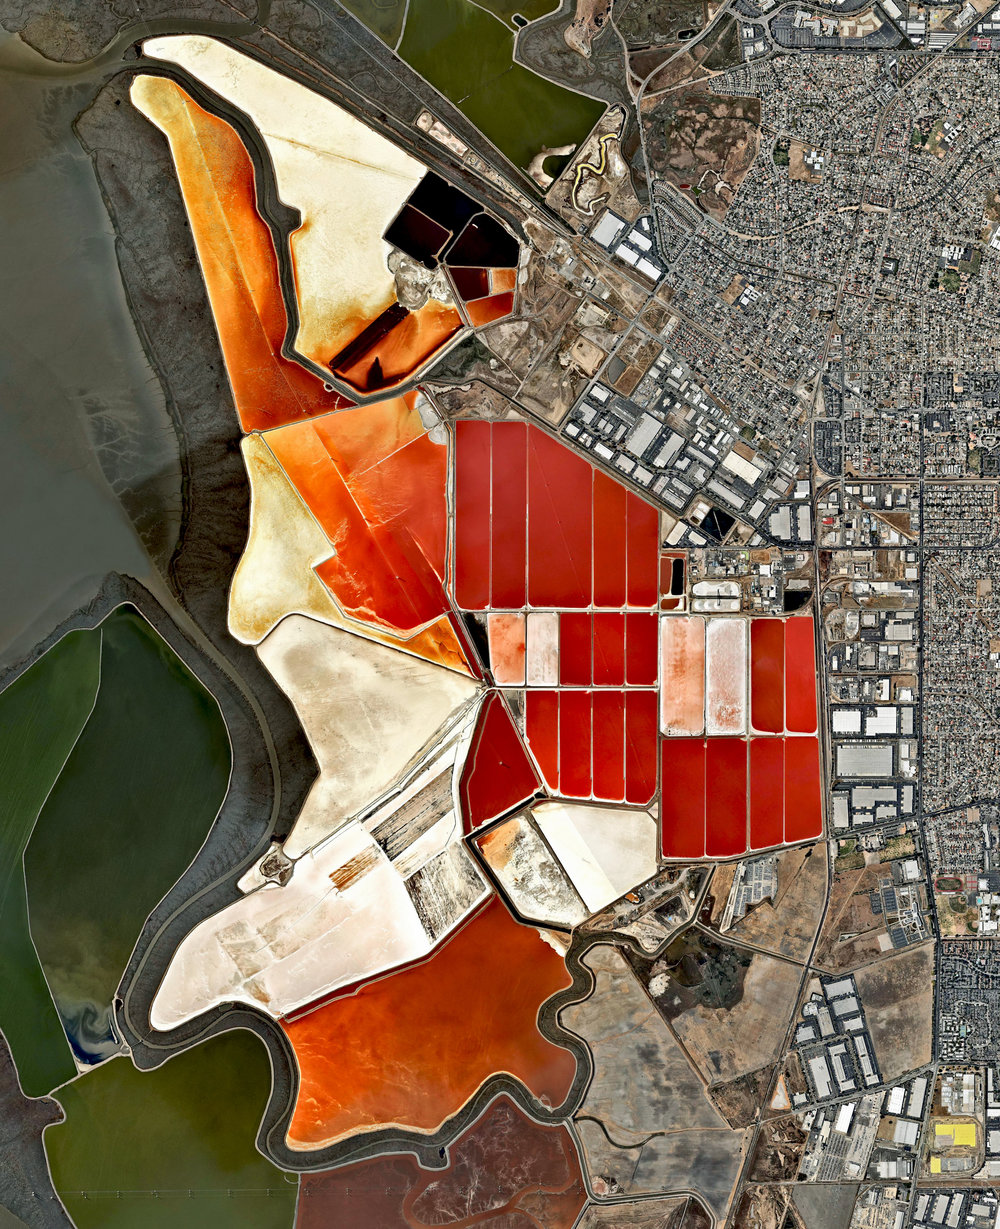 10/10/2016 Salt ponds San Francisco Bay, California, USA 37.5106531, -122.053325   The salt evaporation ponds seen here cover roughly 10 square miles (26 square km) in San Francisco Bay, California, USA. Salt is extracted from the water here through a lengthy process. First, water from the bay is channeled into massive basins where it begins a transformation into brines. Over five years, the brines evaporate, concentrate, and travel several miles before they are collected as pure salt crystals. The massive ponds get their vibrant color from a particular species of algae (Dunaliella) that thrives in extremely salty water and produces a red pigment. Source imagery: Nearmap